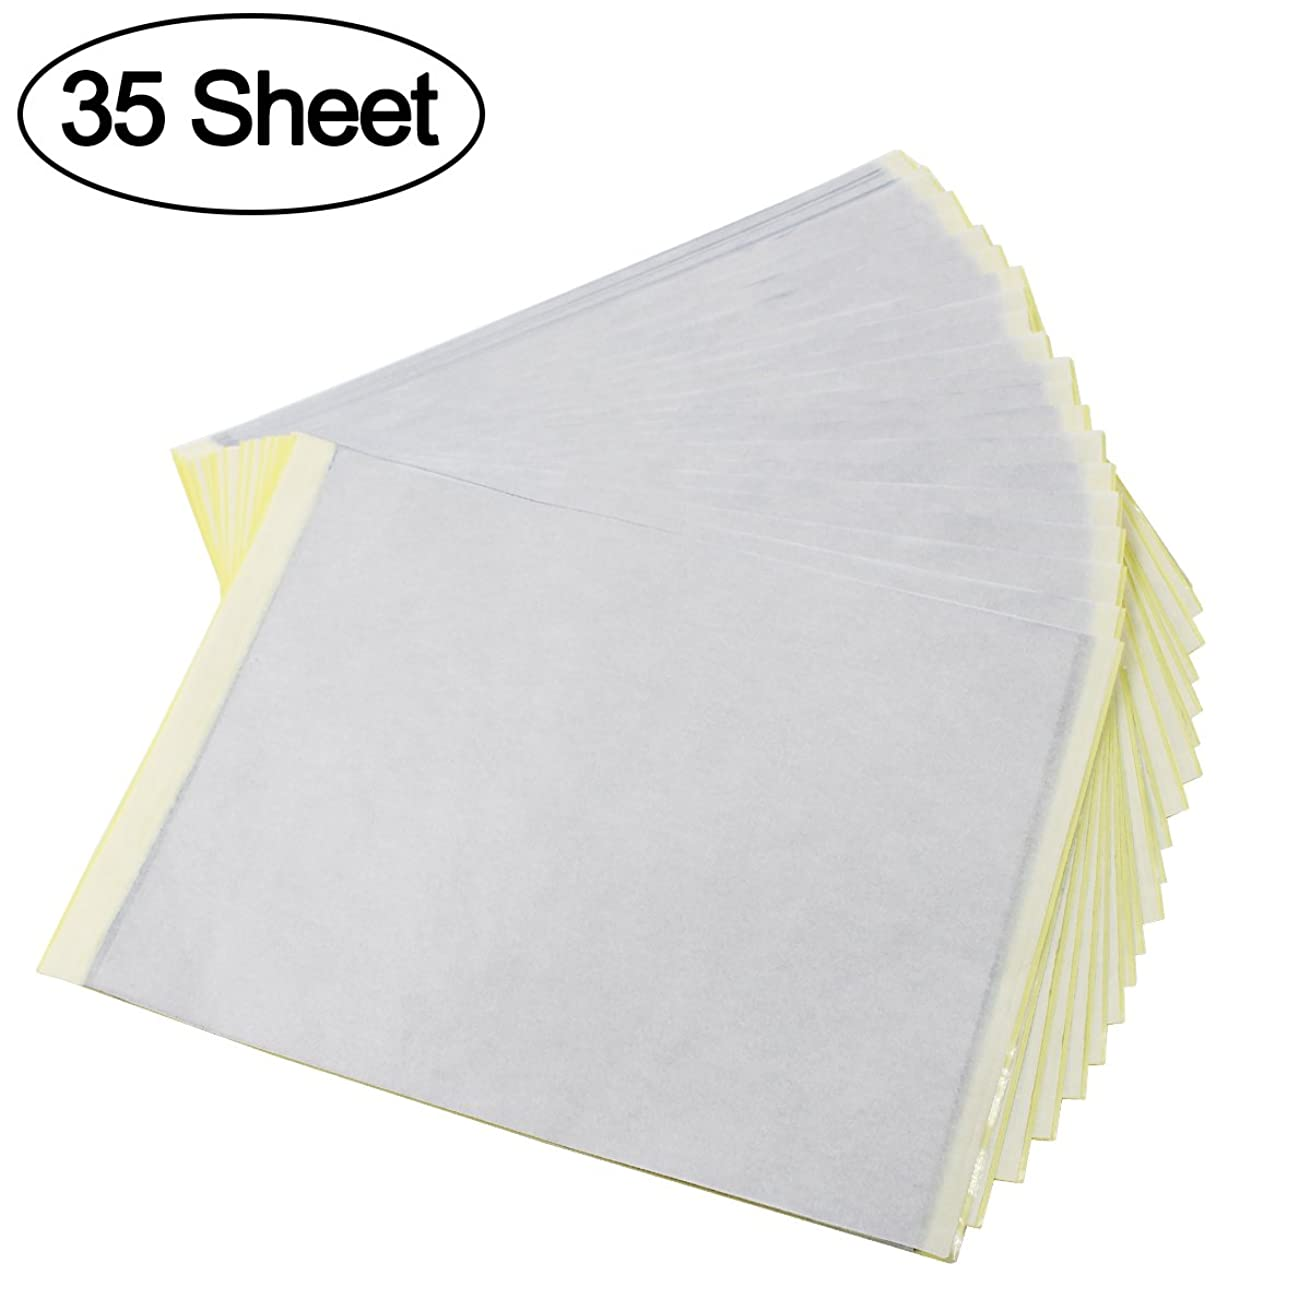 Tattoo Transfer Paper, Qulable Approx. 35 Sheets Stencil Paper Copy Paper Tracing Paper with 4 Layers (A4 Size)